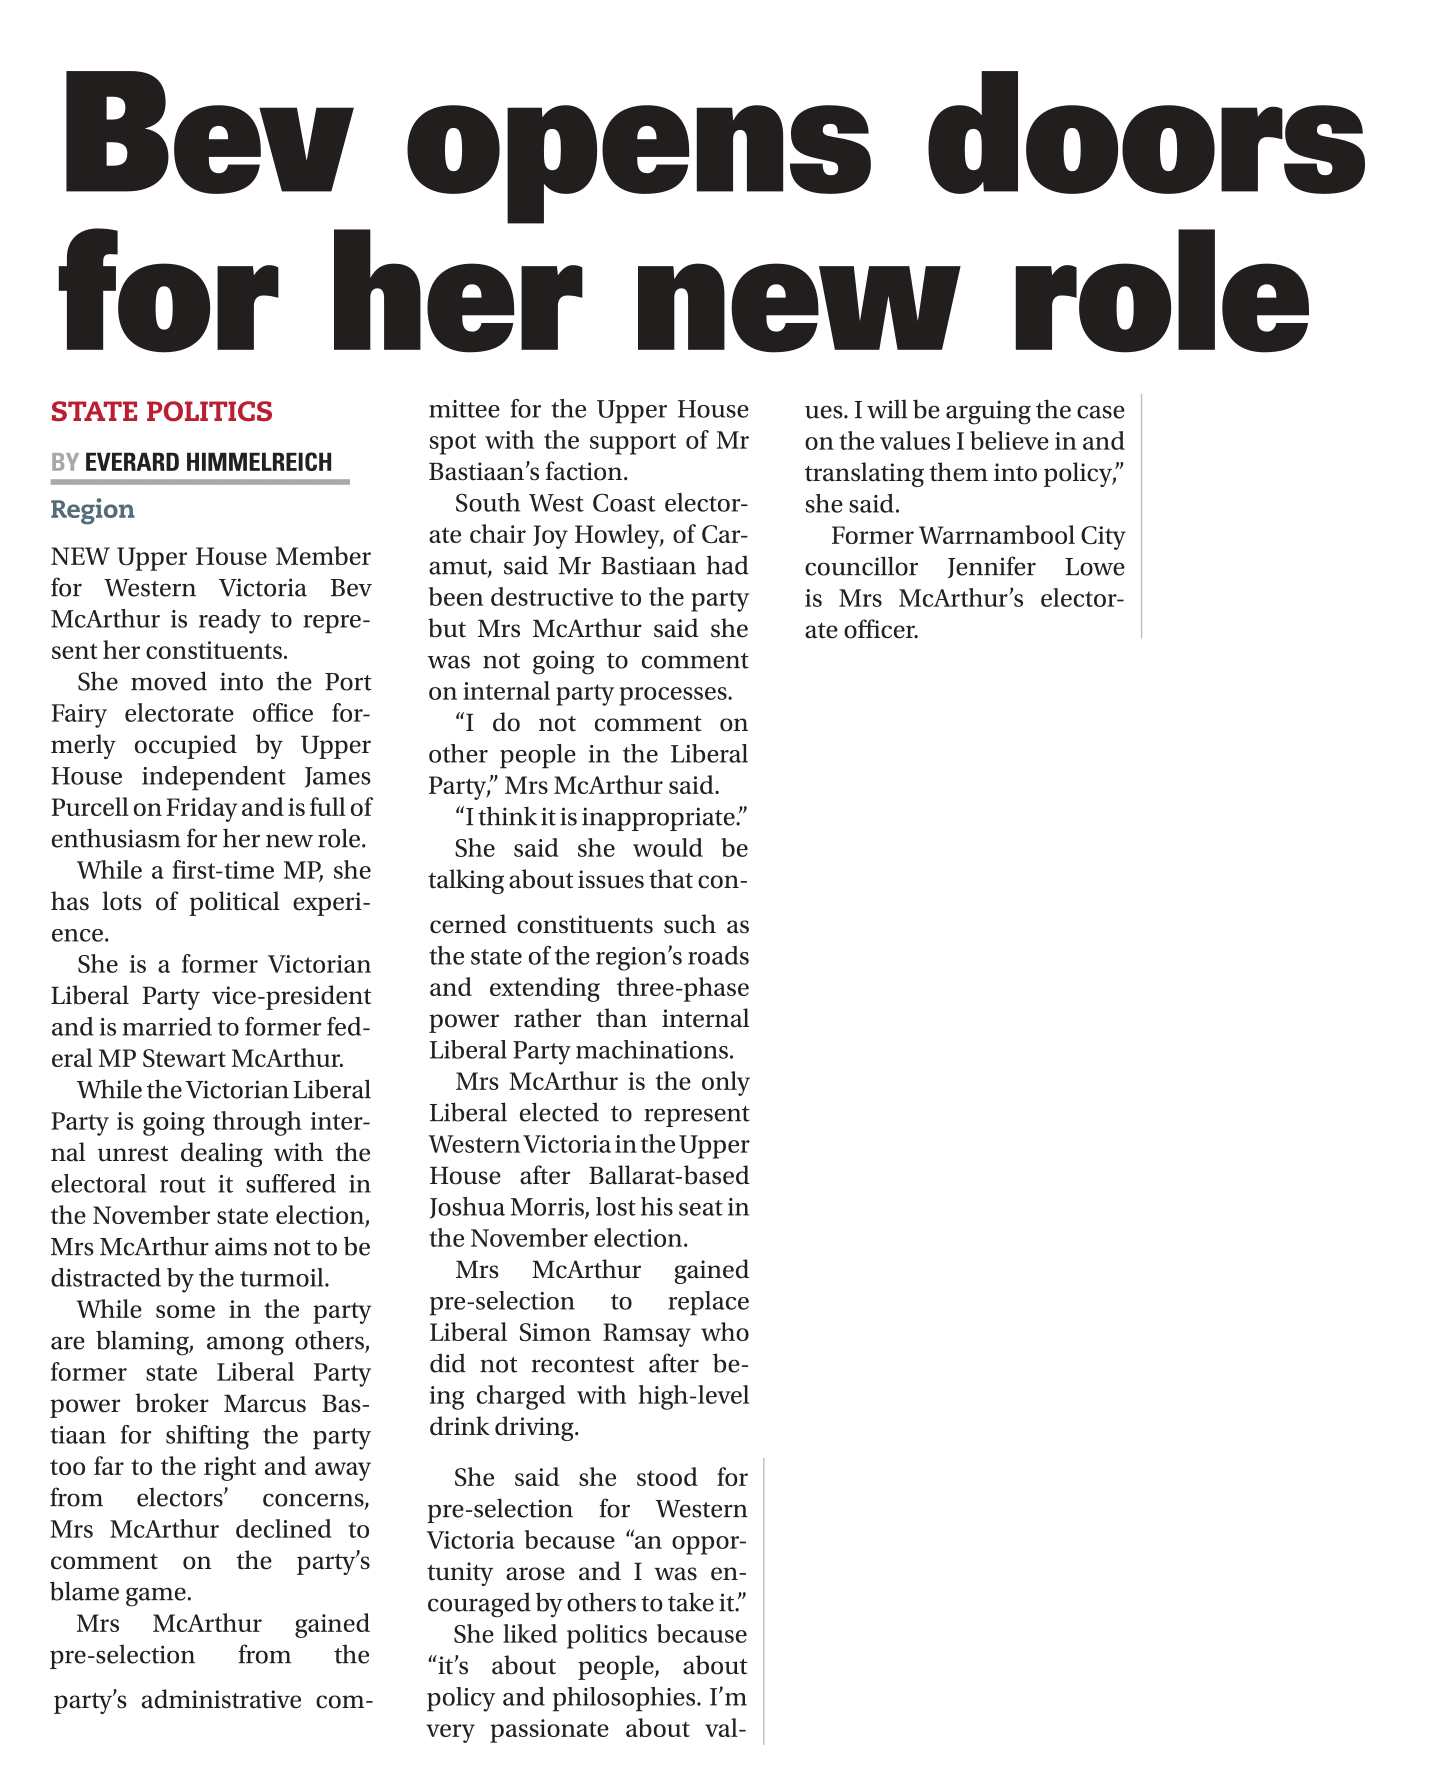 1056263071 Bev opens doors for her new role 26 Dec 2018 Warrnambool Standard-1.png